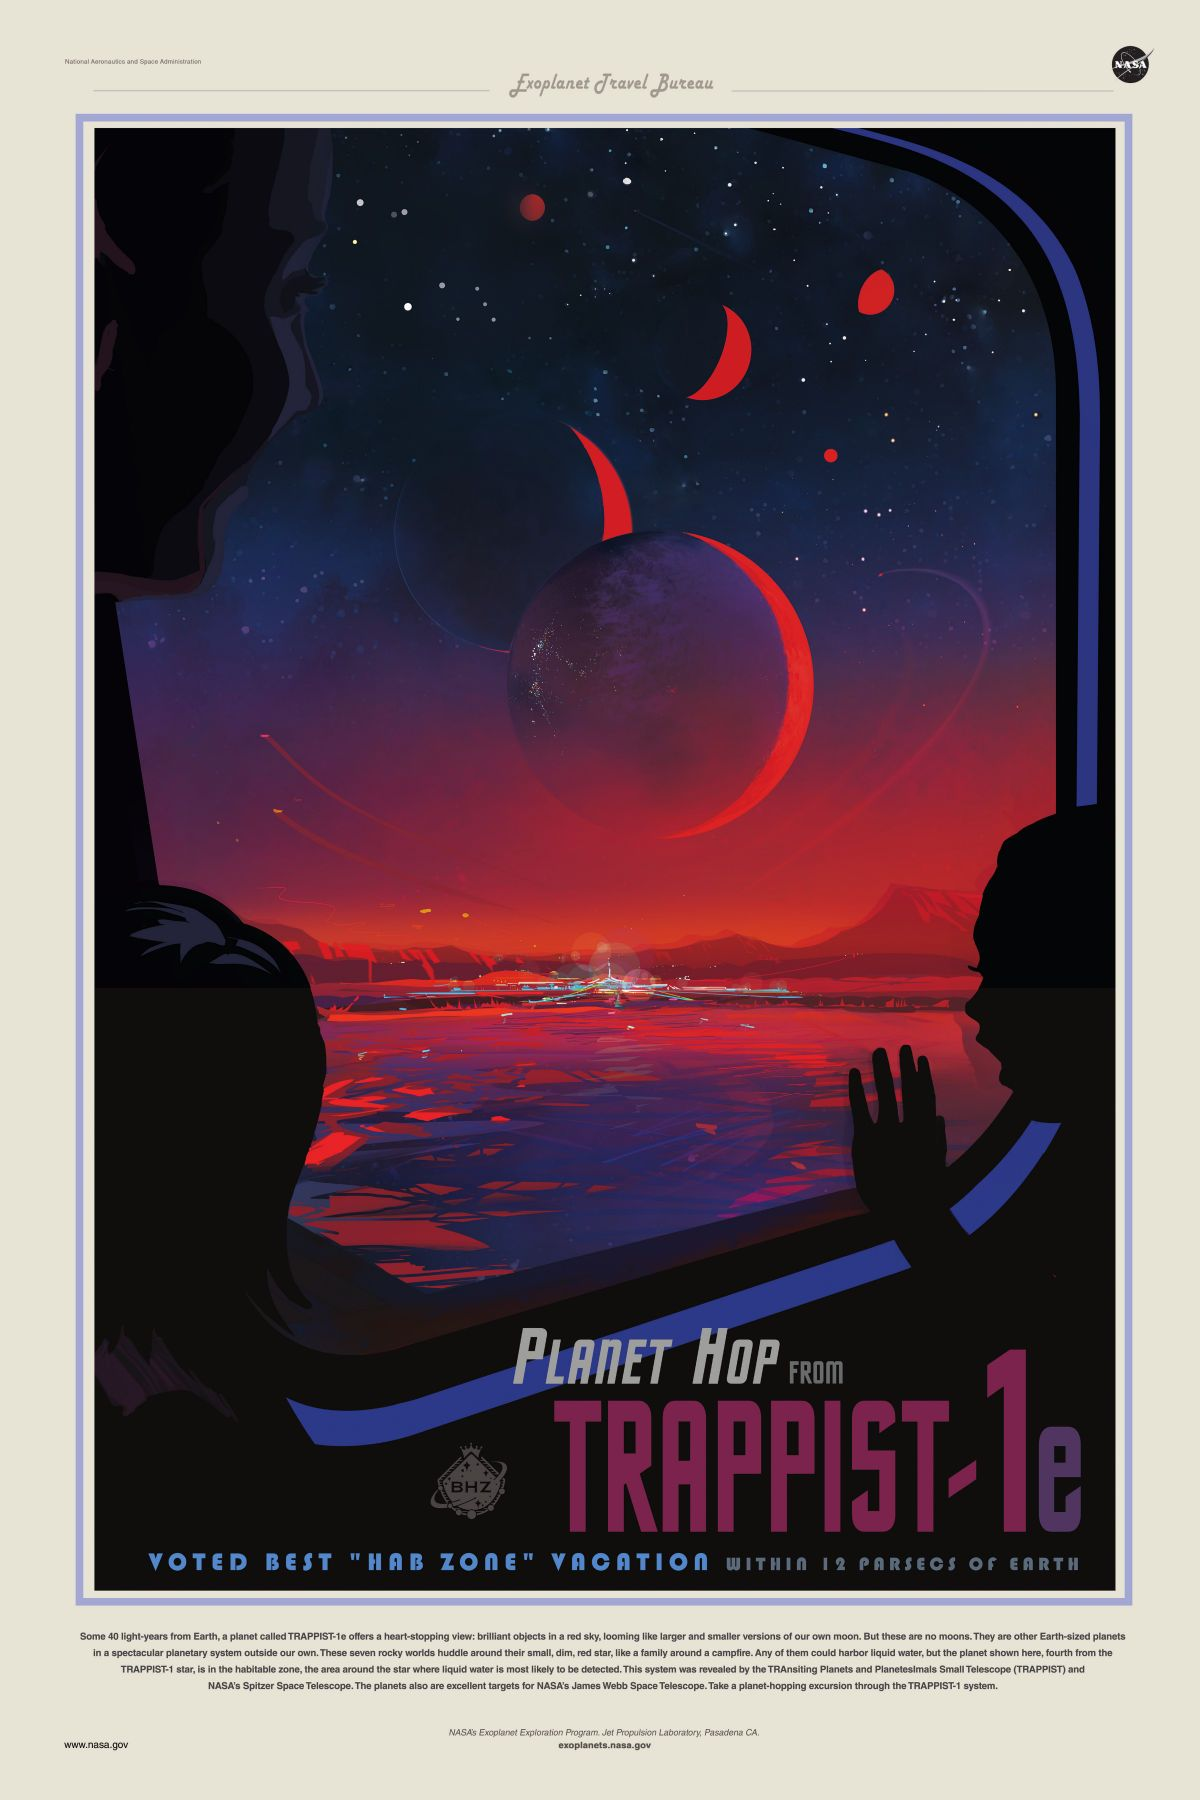 1200x1800 Planet hop from TRAPPIST-1e – Exoplanet Exploration: Planets ...